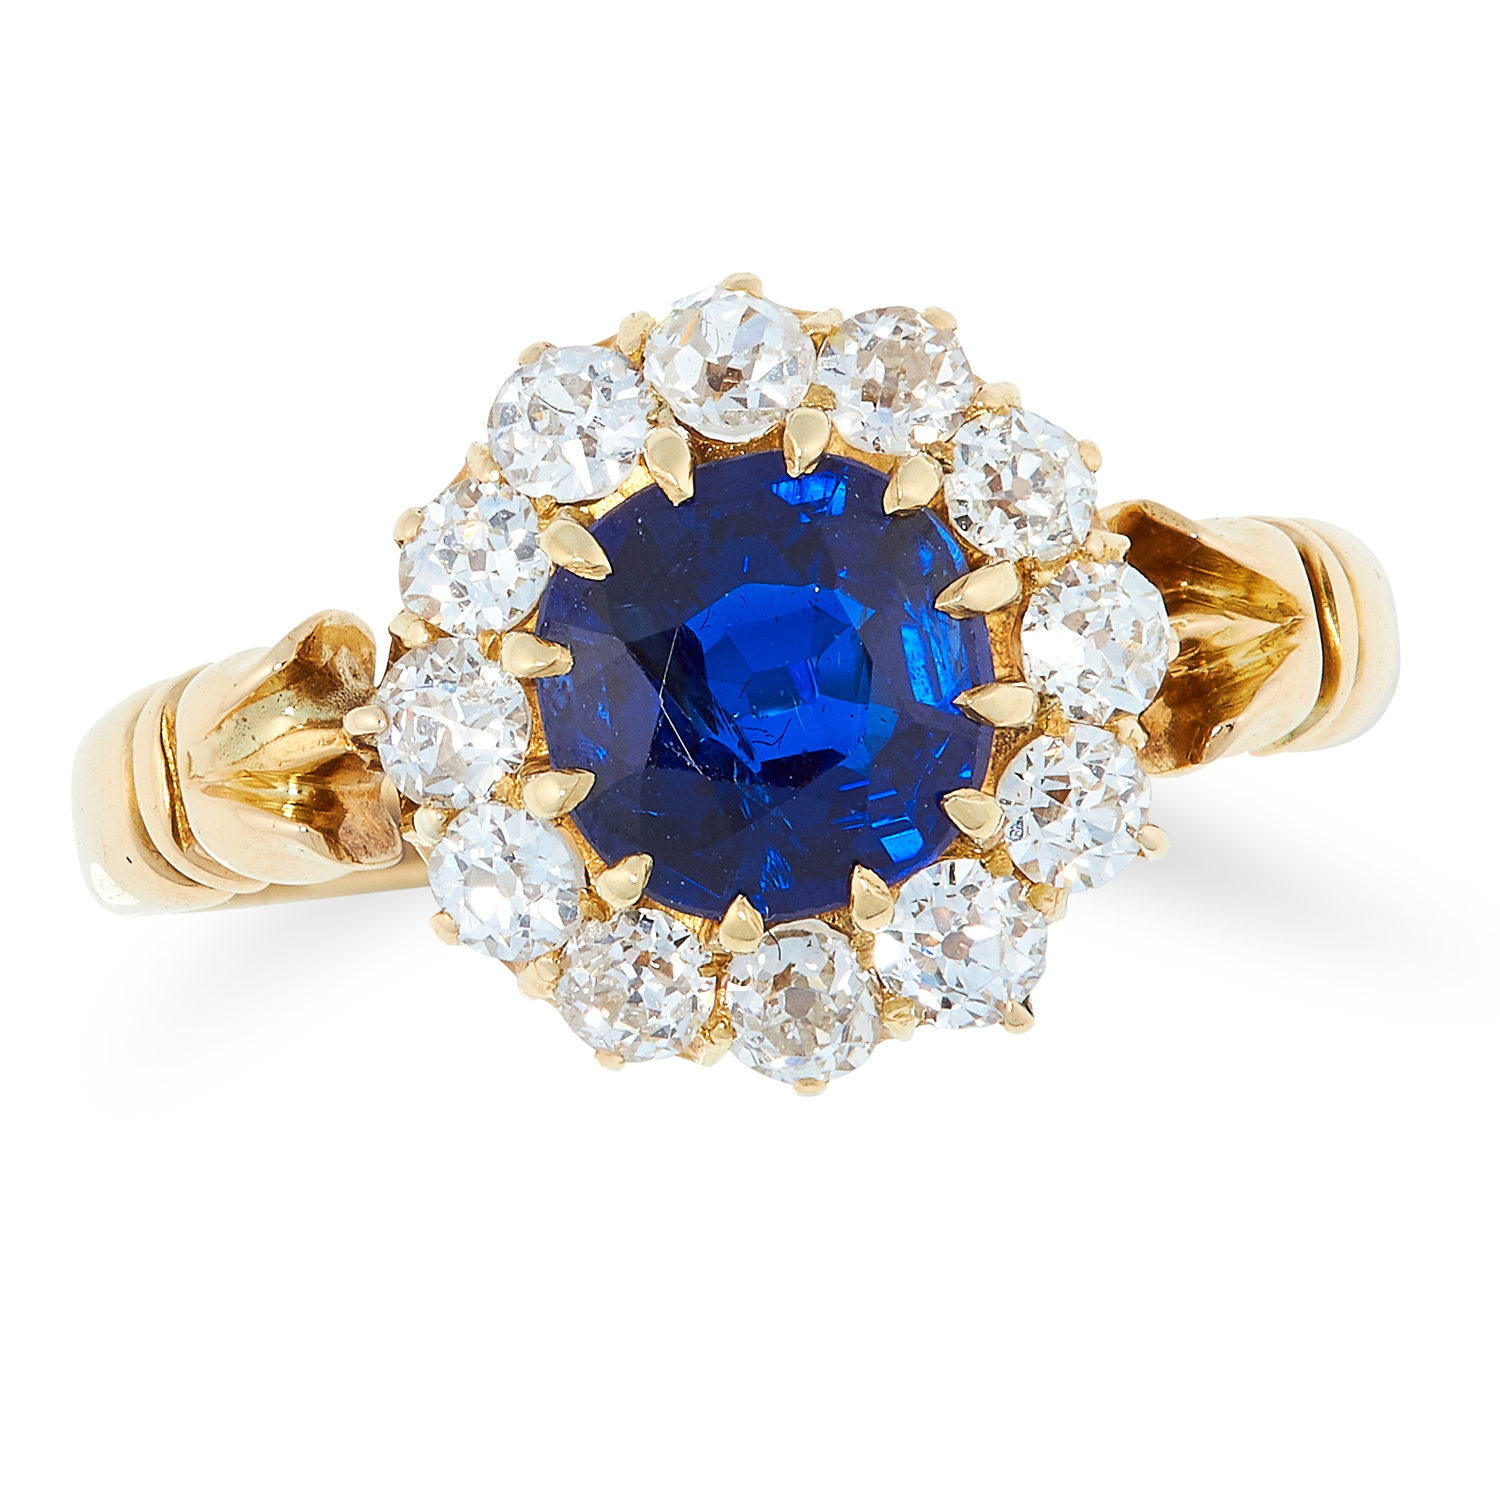 AN ANTIQUE SAPPHIRE AND DIAMOND CLUSTER RING, 1903 in 18ct yellow gold, set with a cushion cut